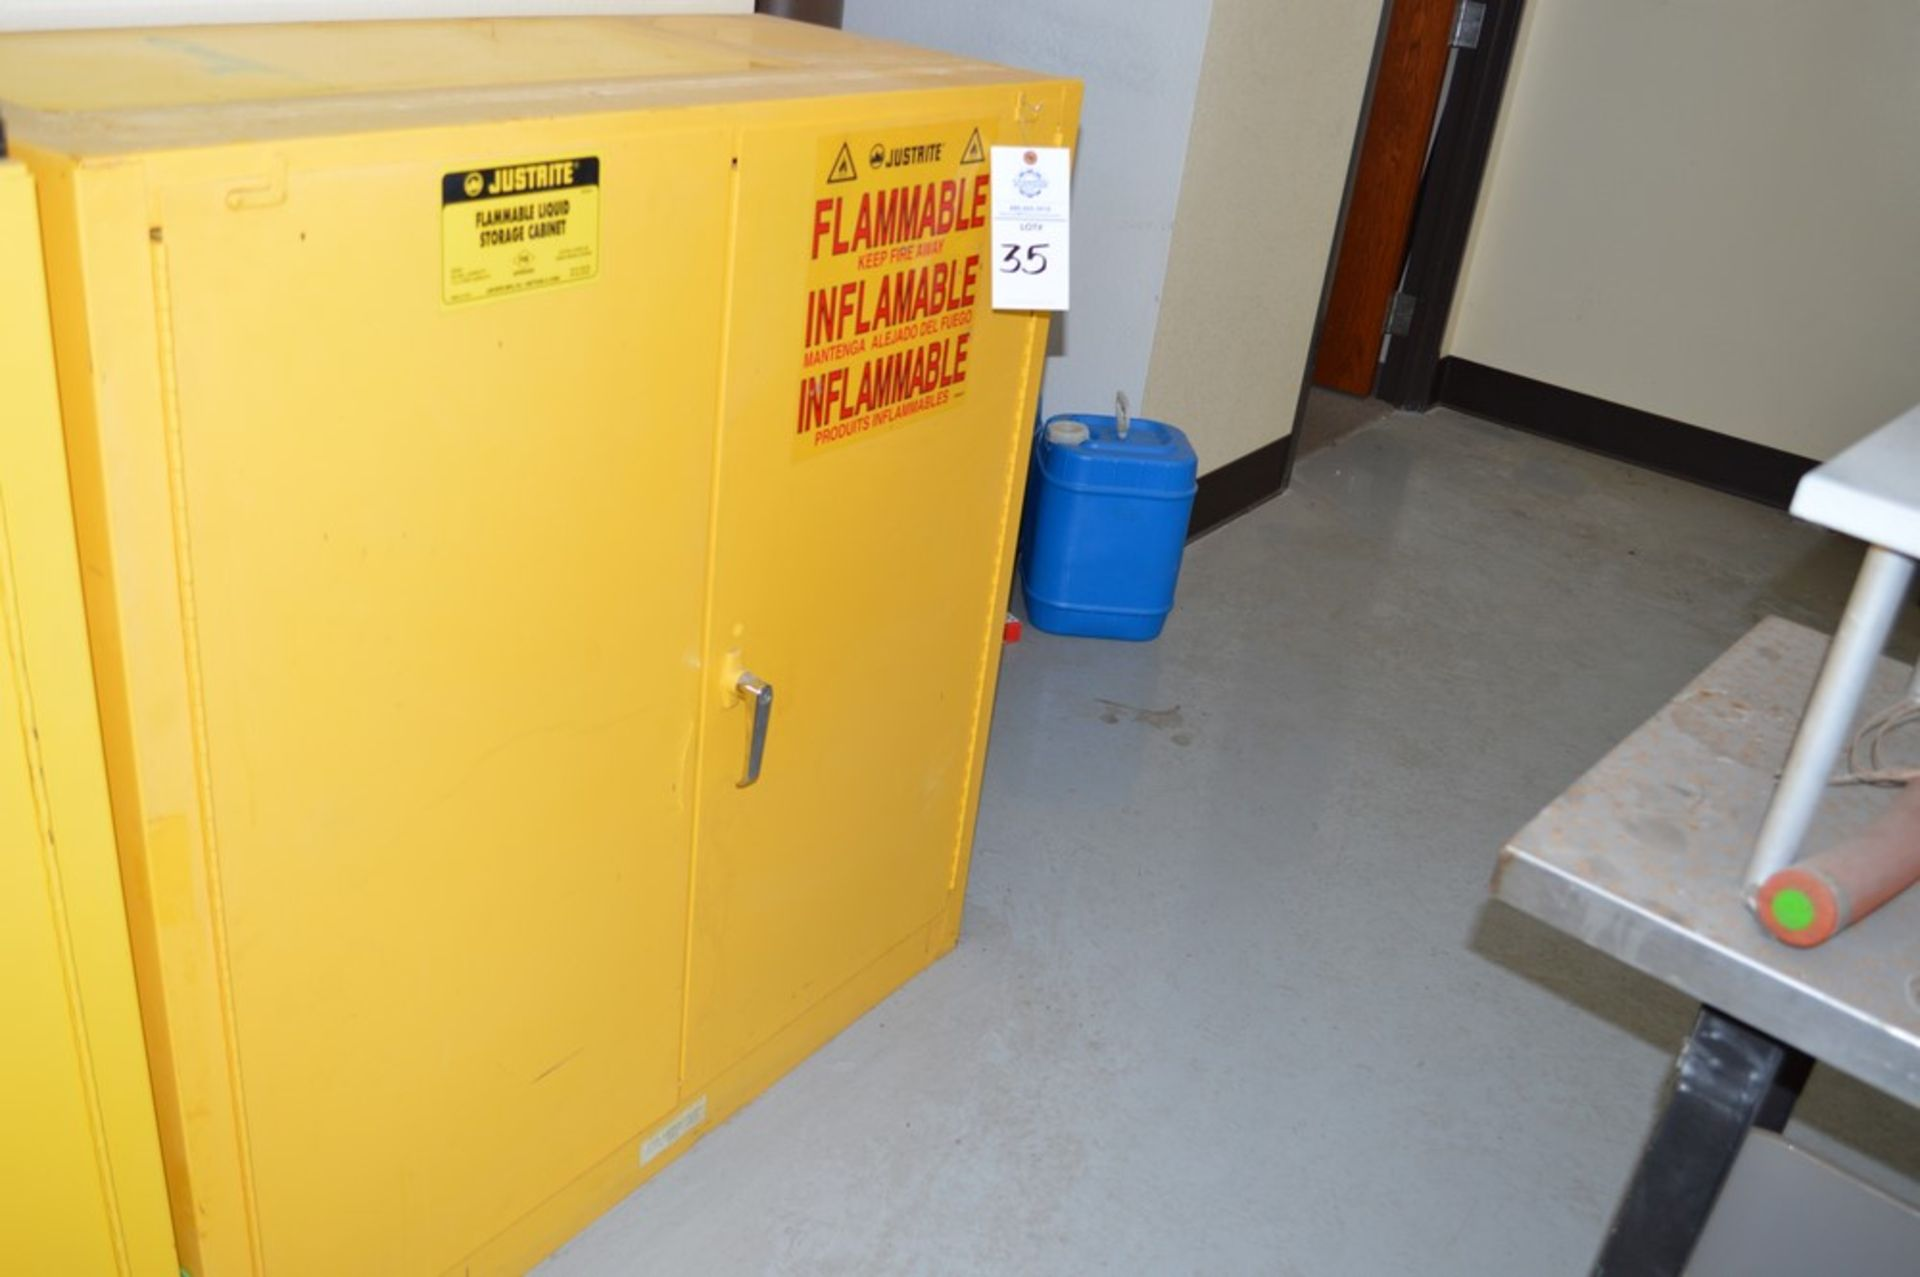 Just Rite flammable storage cabinet (no contents) 18 x 43 x 45 - Image 2 of 2